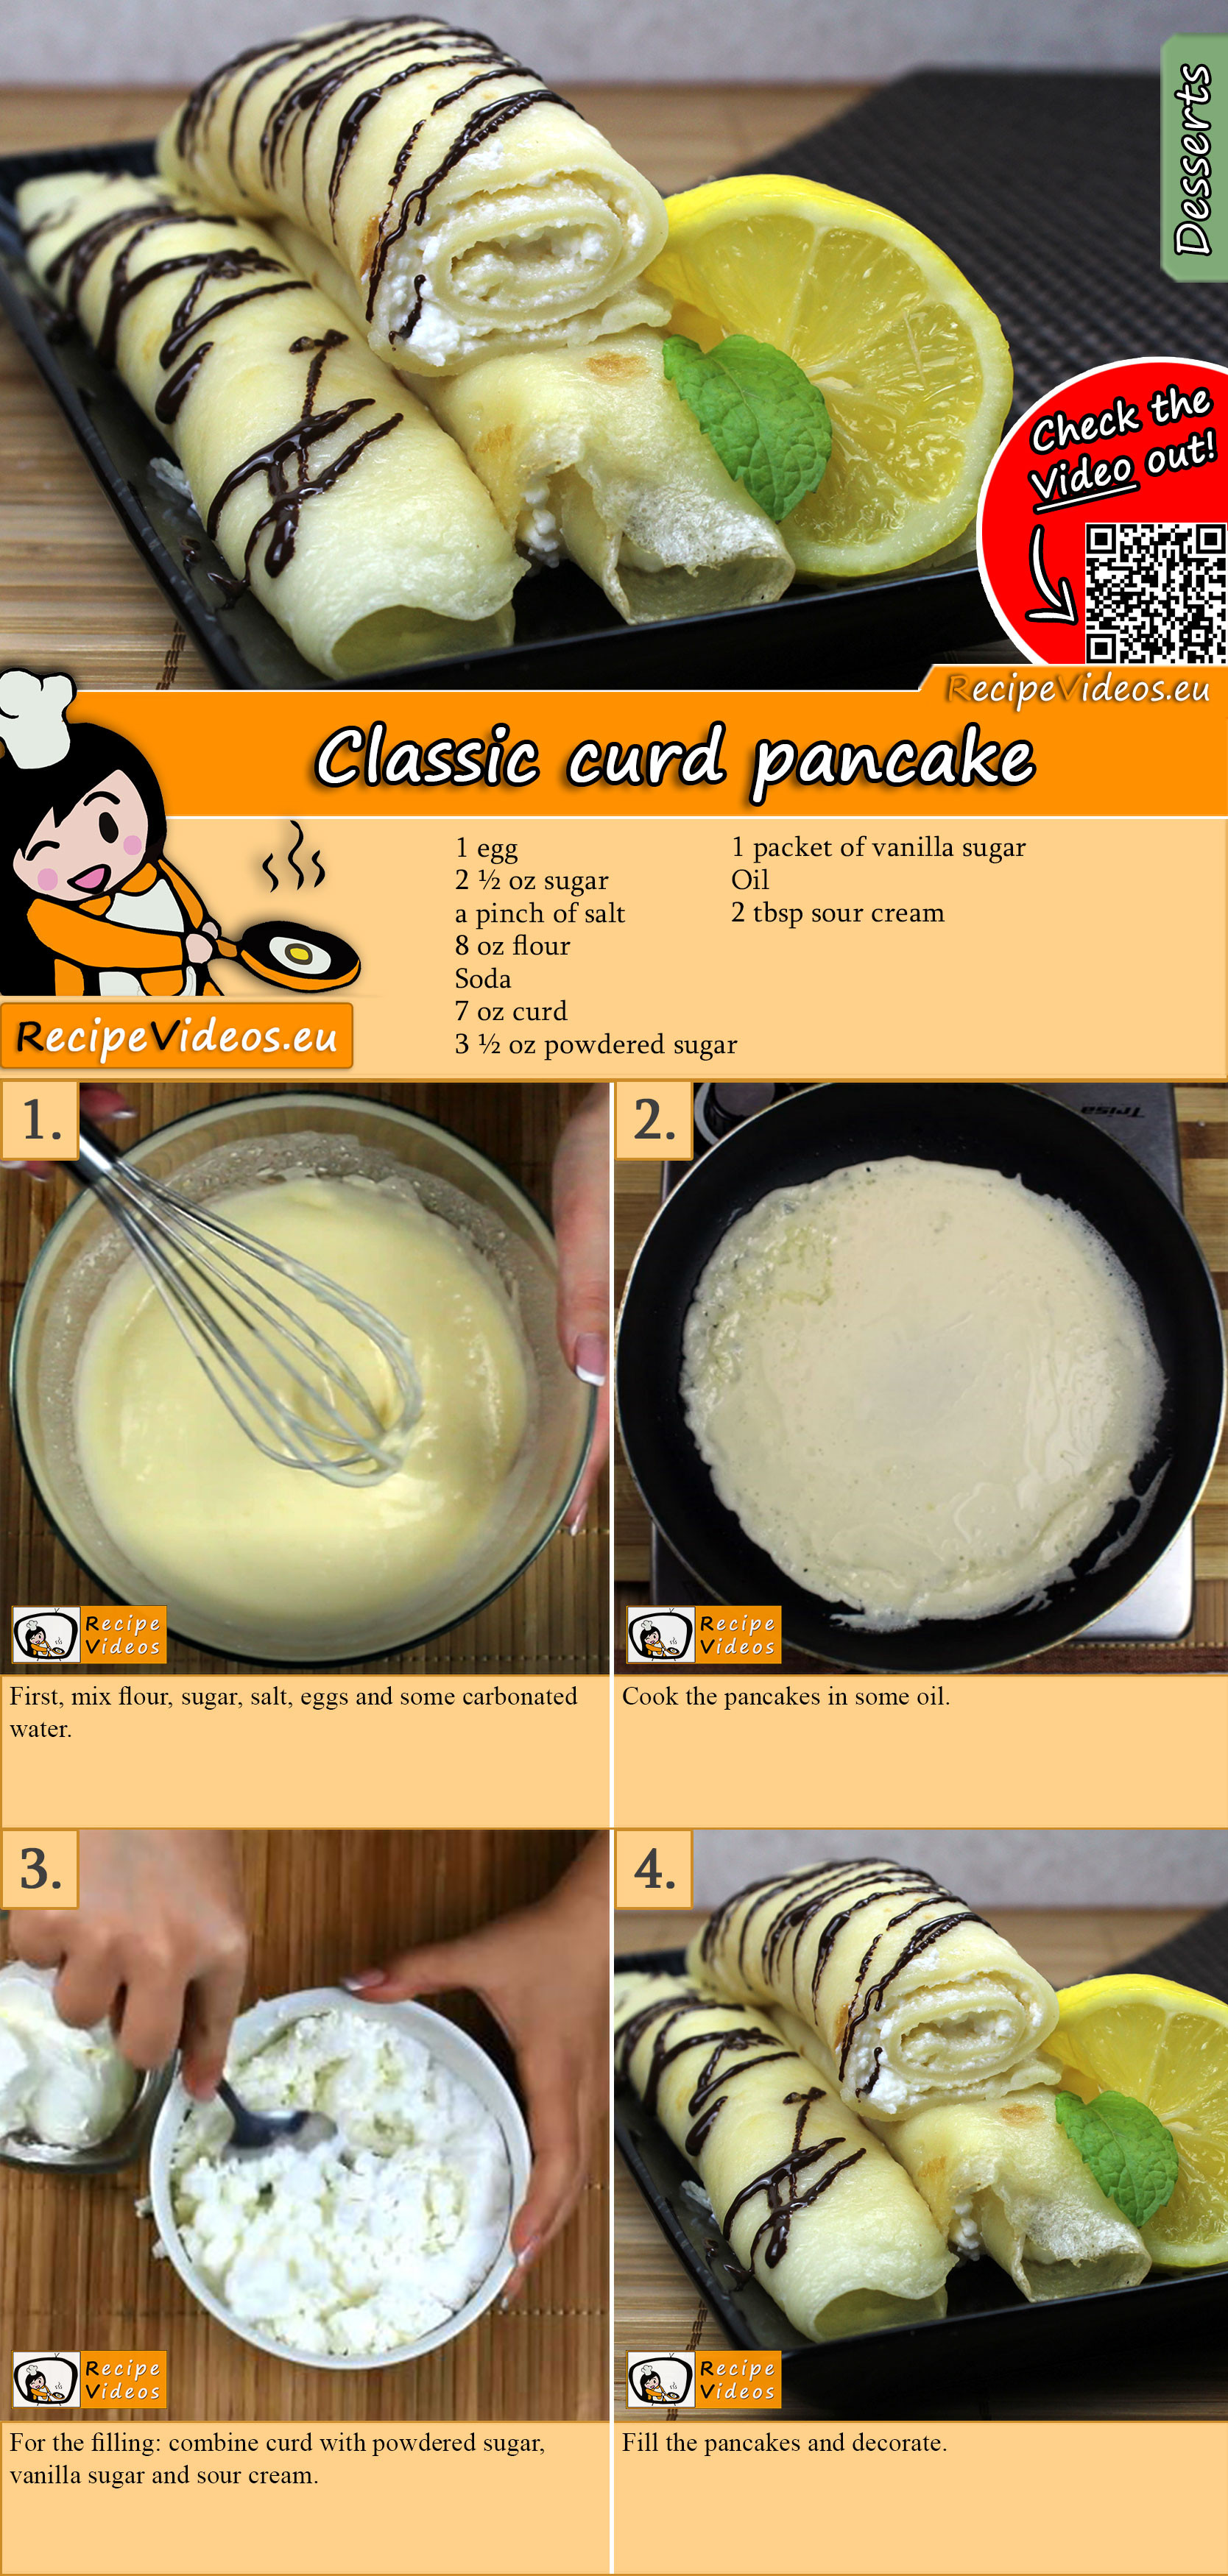 Classic curd pancake recipe with video